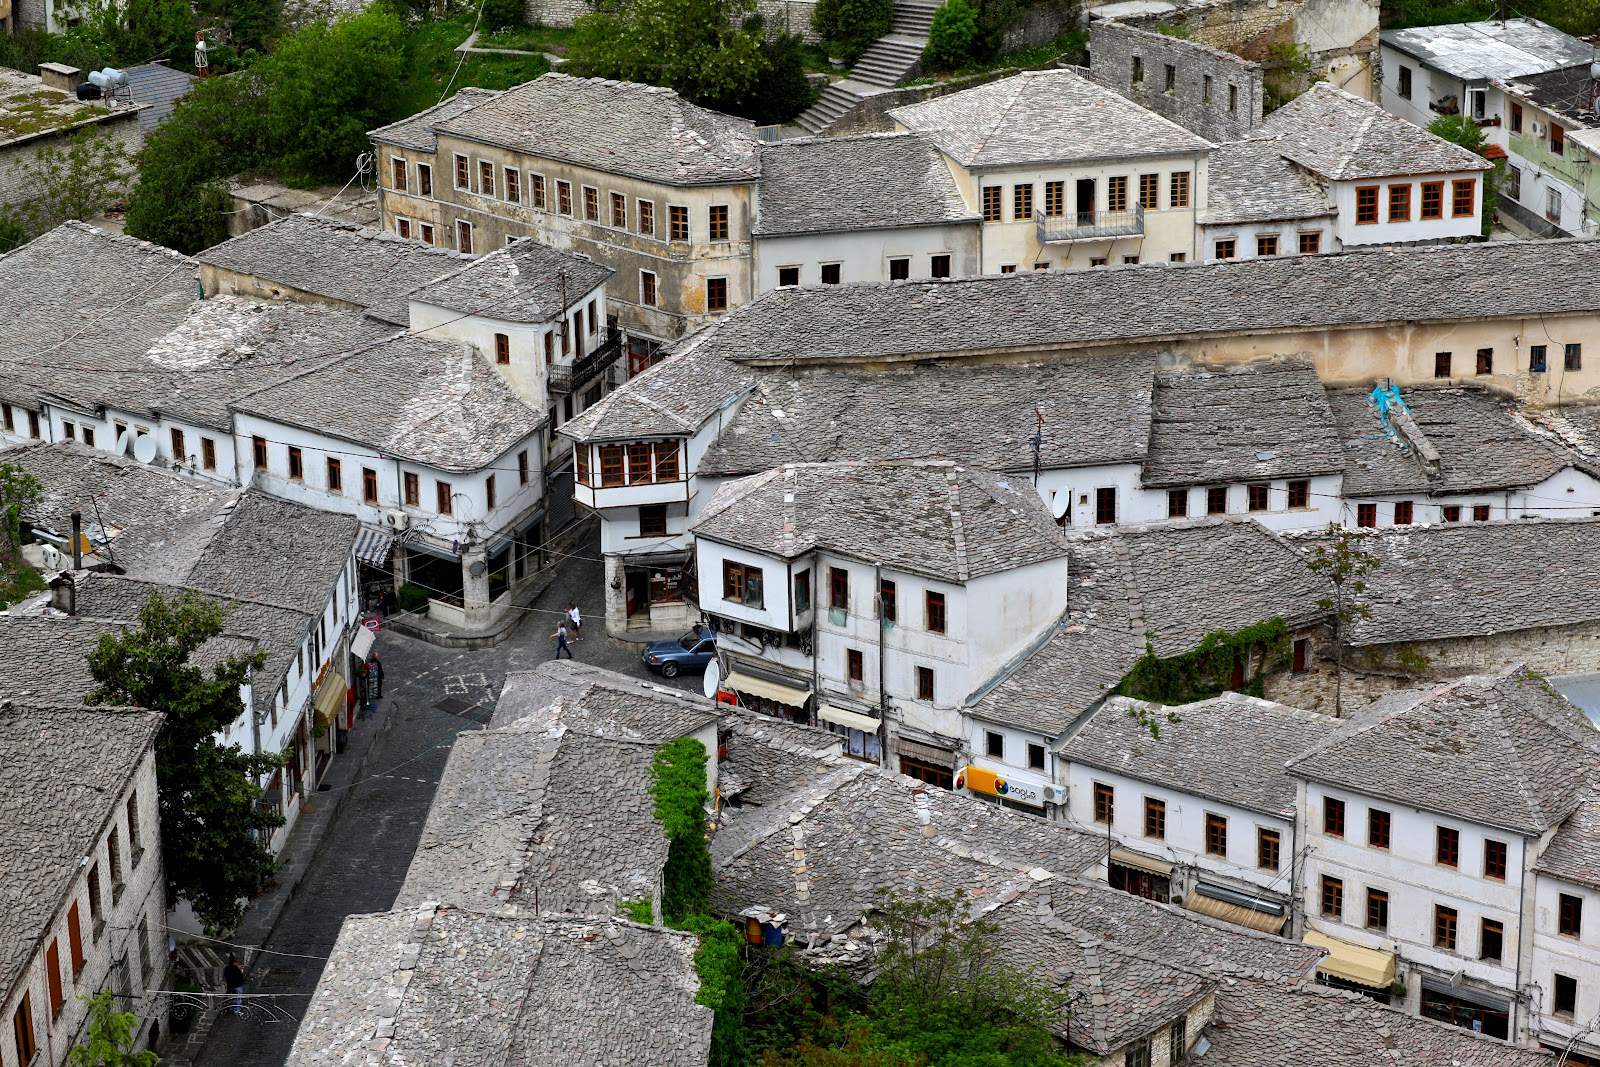 The Houses of Gjirokastër